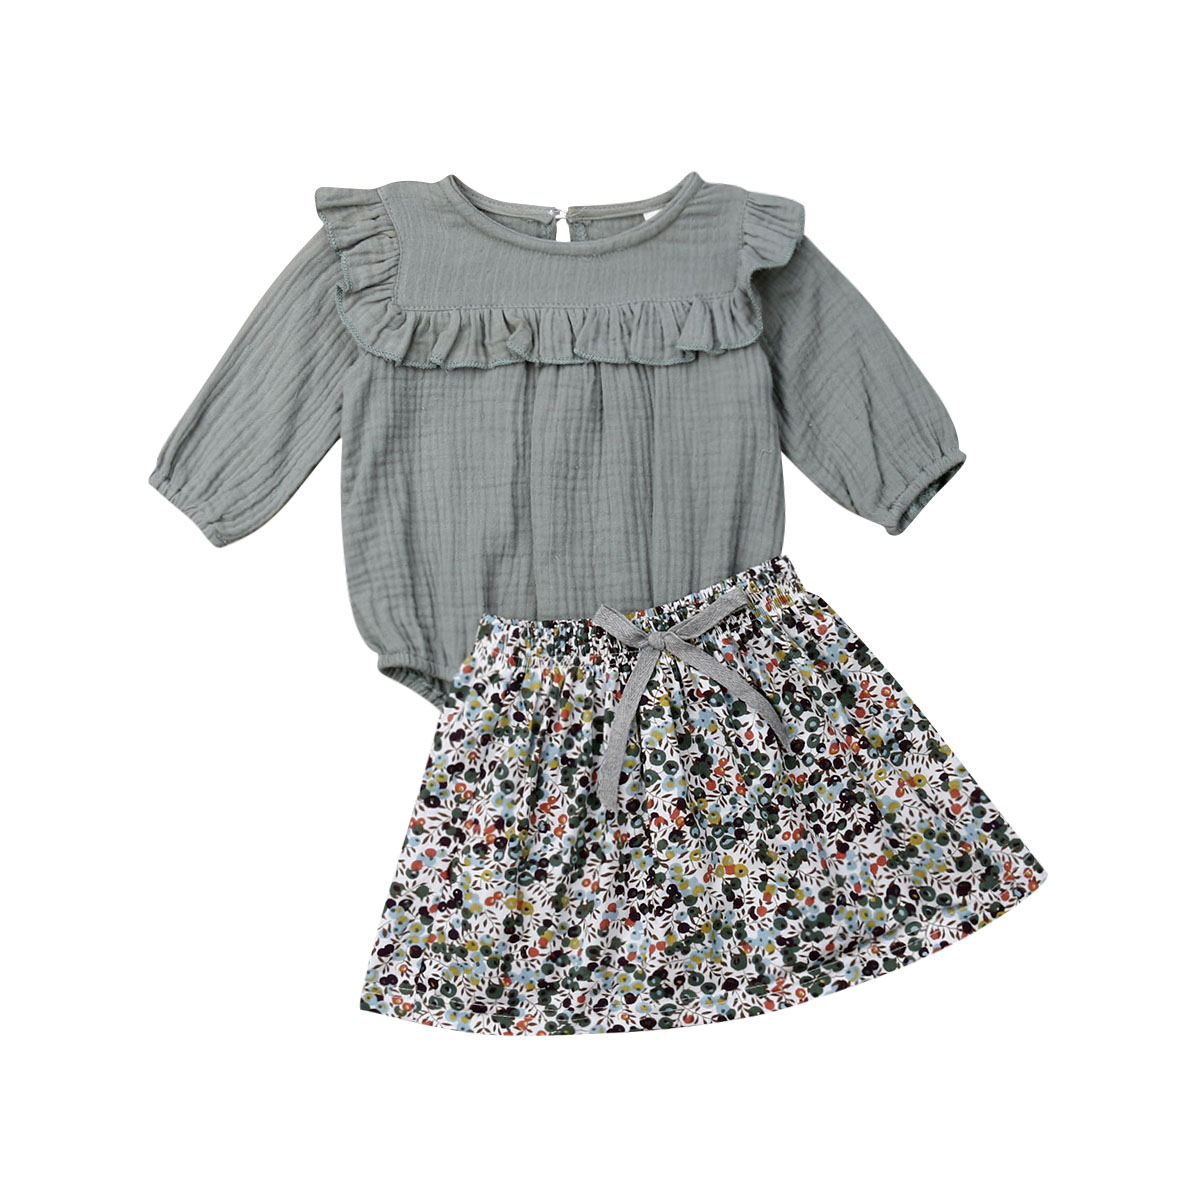 2019 New Infant <font><b>Newborn</b></font> <font><b>Baby</b></font> <font><b>Girls</b></font> <font><b>Clothes</b></font> Set <font><b>Autumn</b></font> Spring Long Sleeve Ruffles Romper + Flower Skirts Outfits image